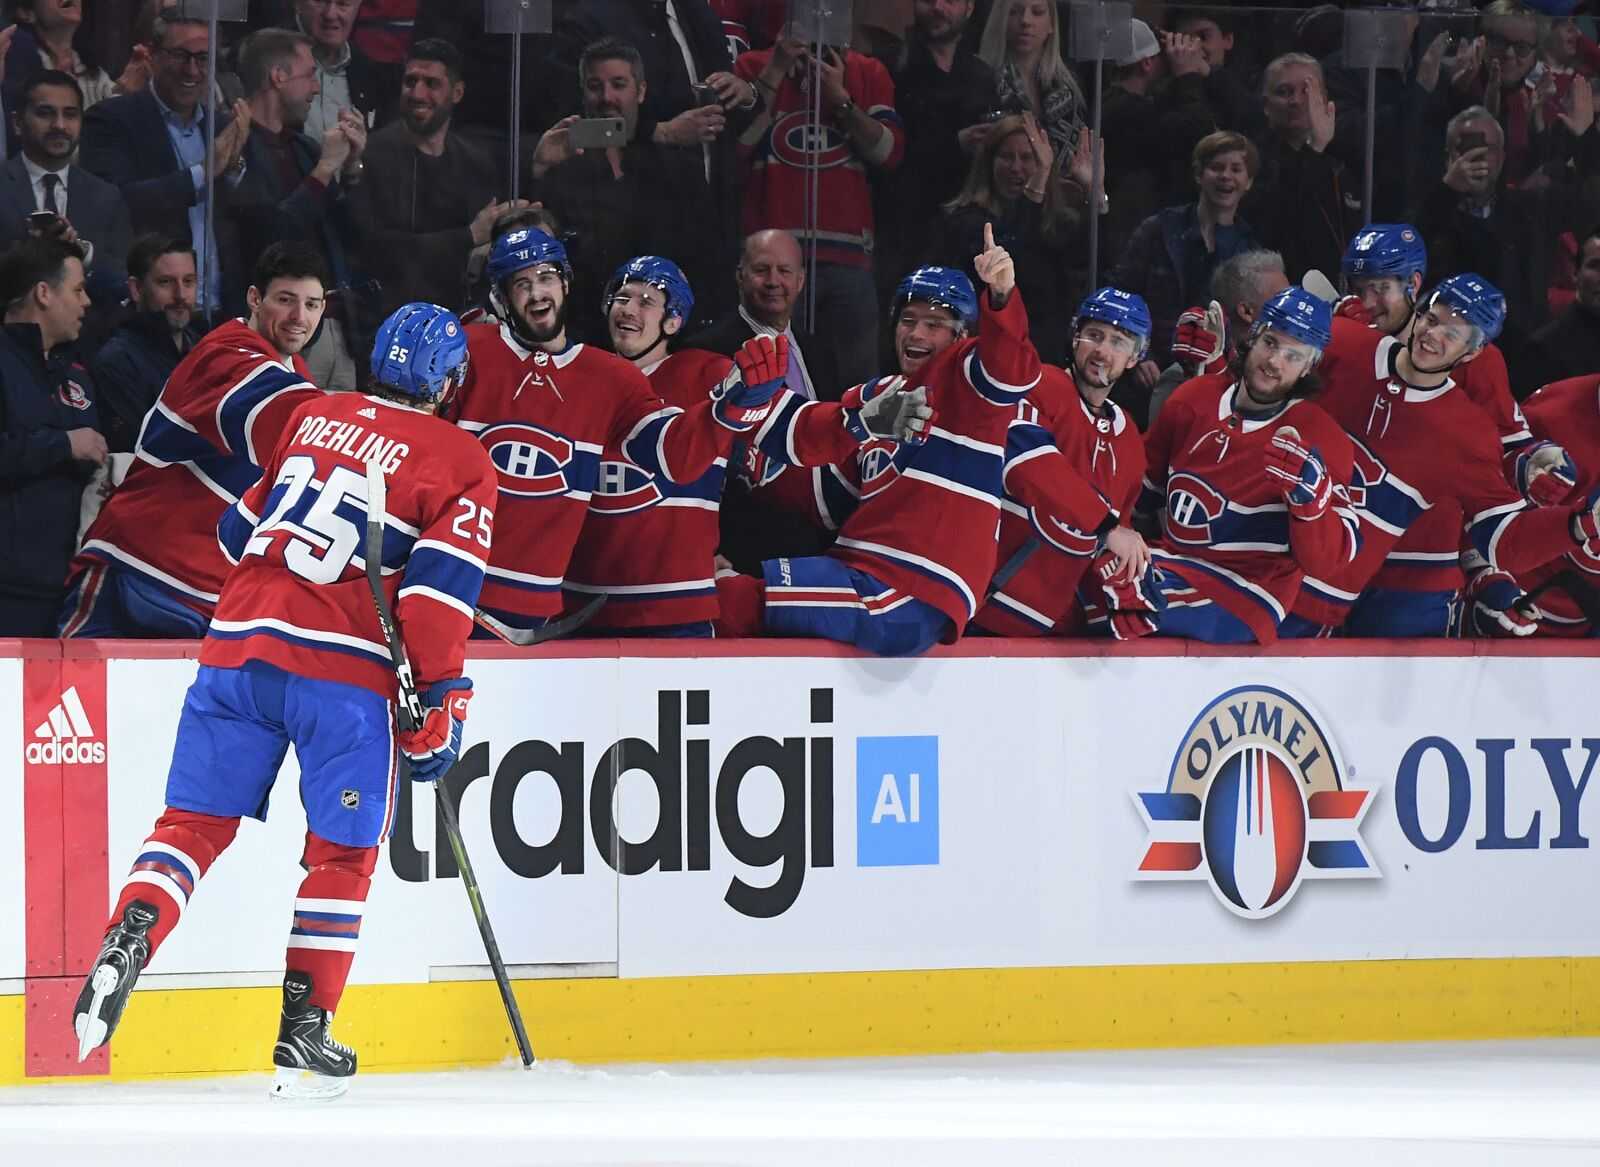 Montreal Canadiens: Are They Worse Than Last Season?